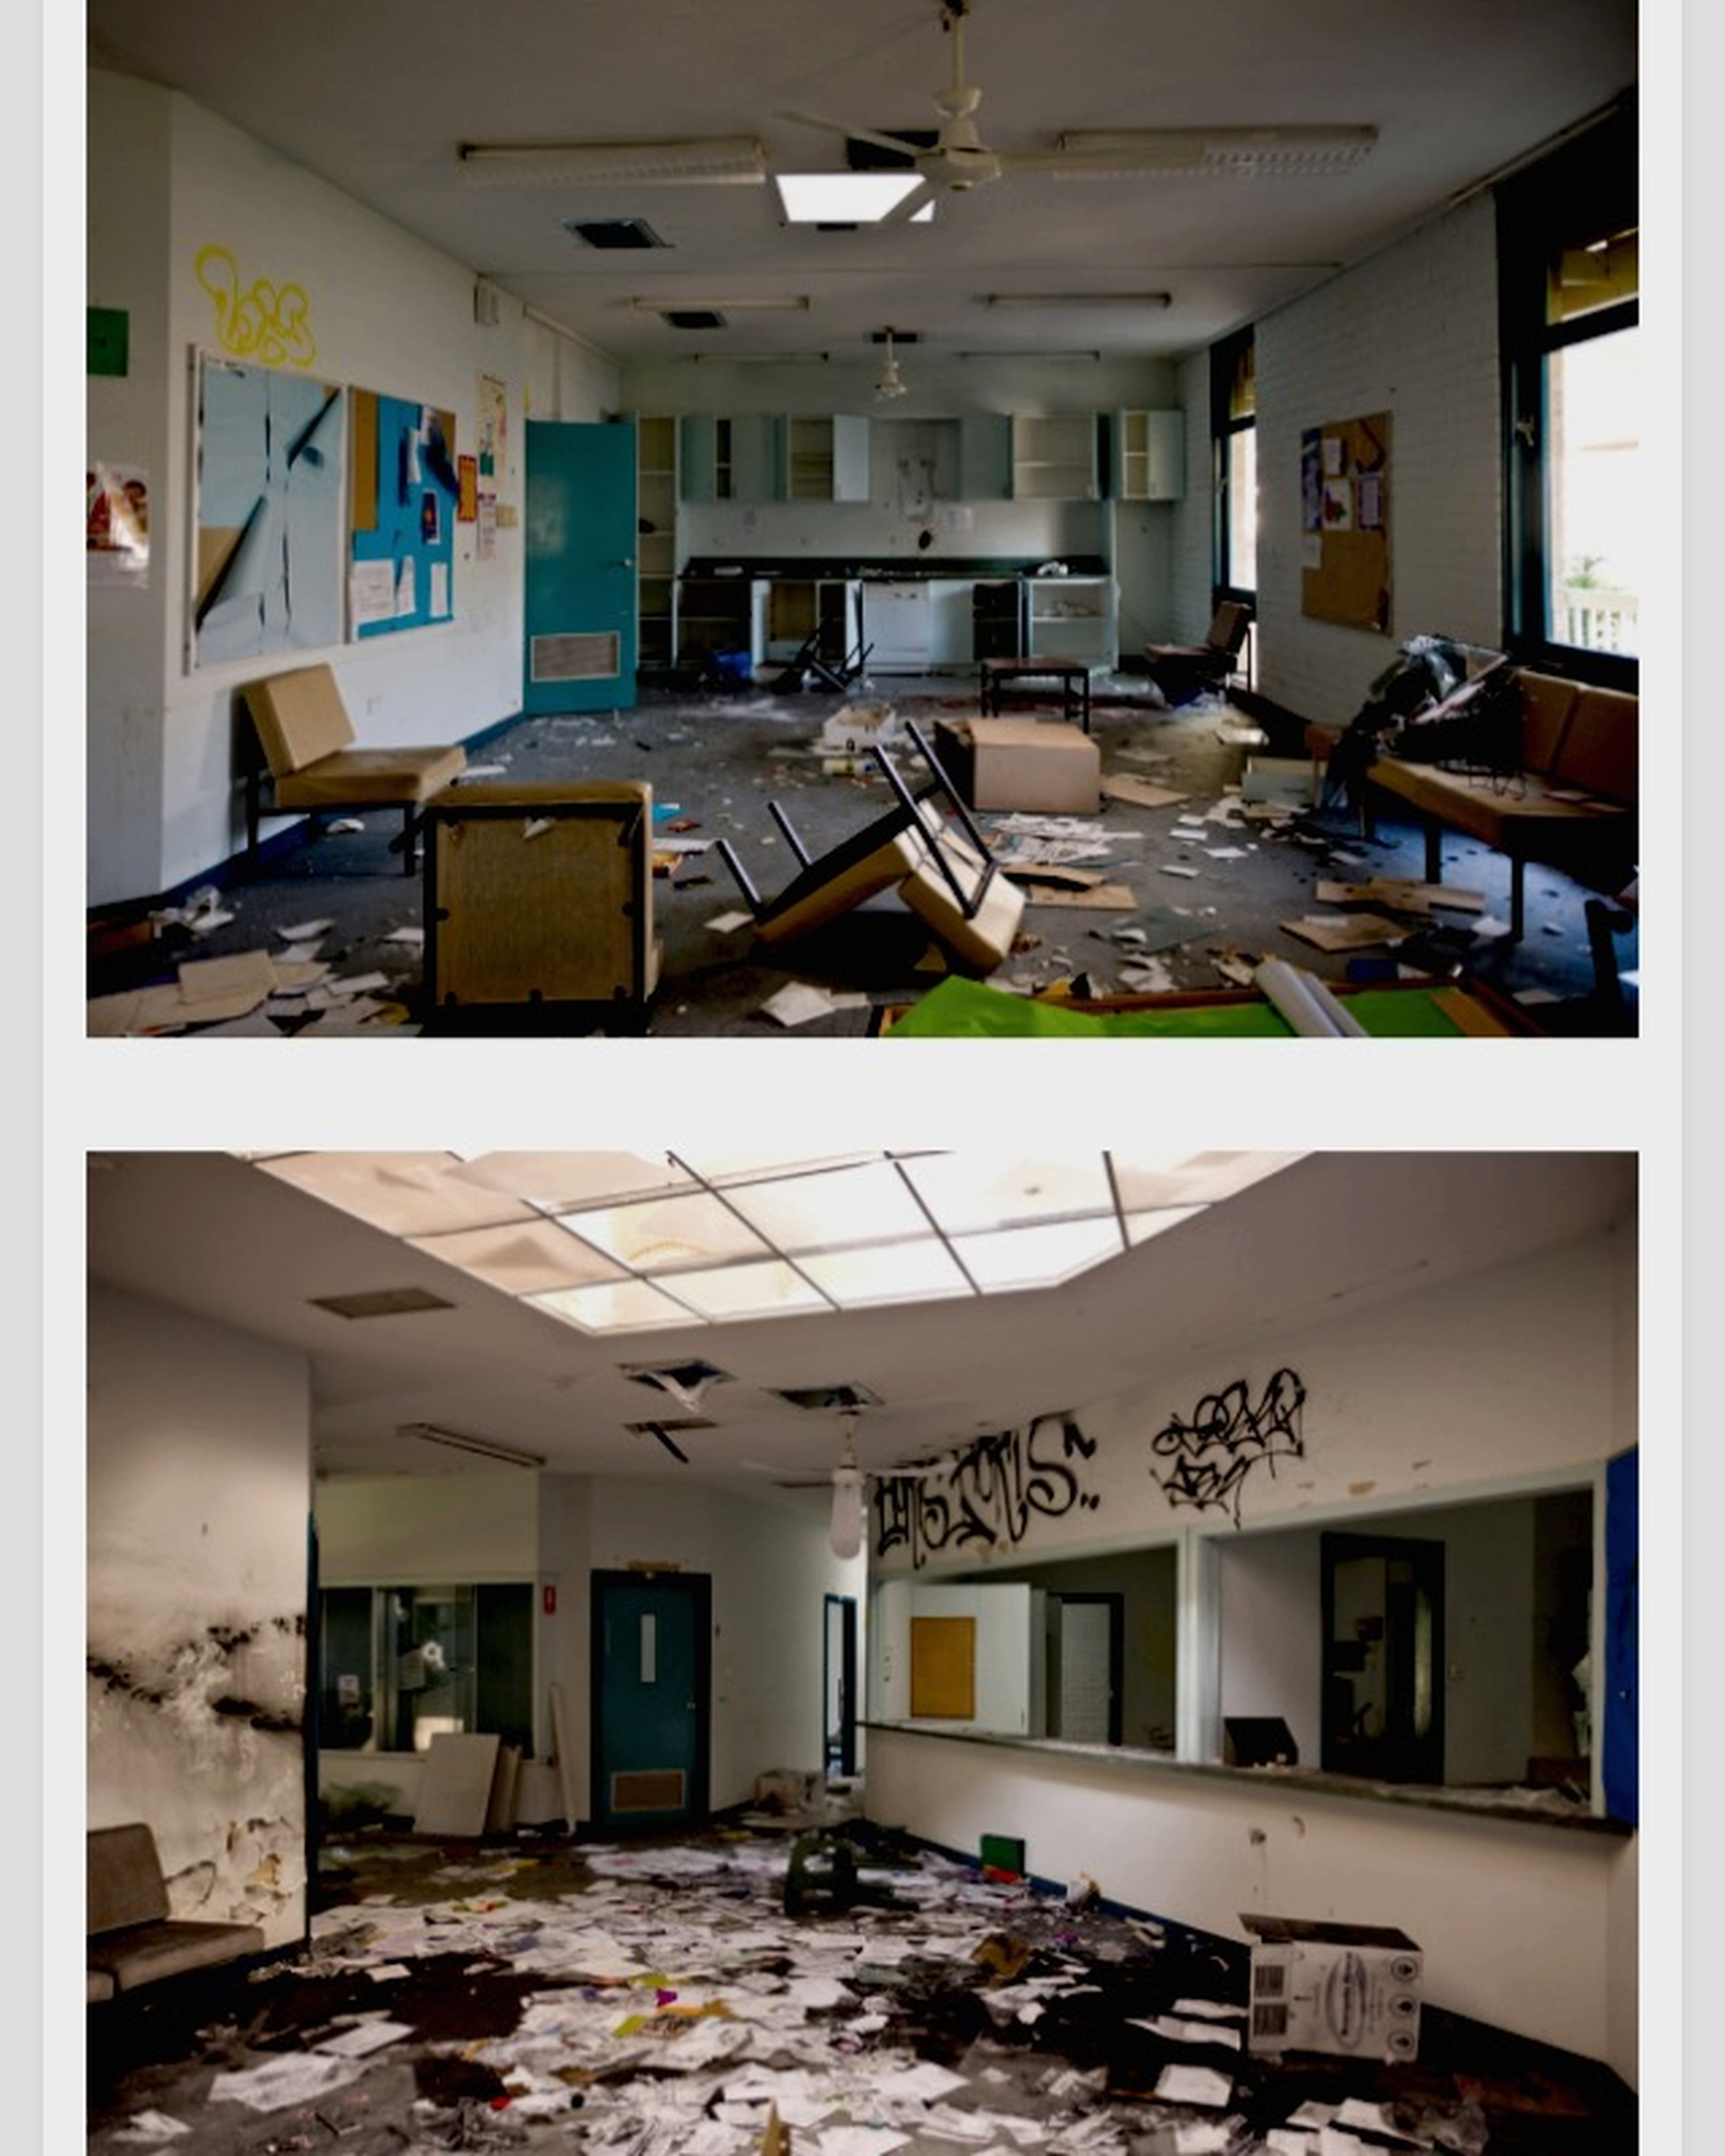 This is what school will look like after I finish Urbex Pembroke High School For Real I Want To Explore Abandoned Buildings